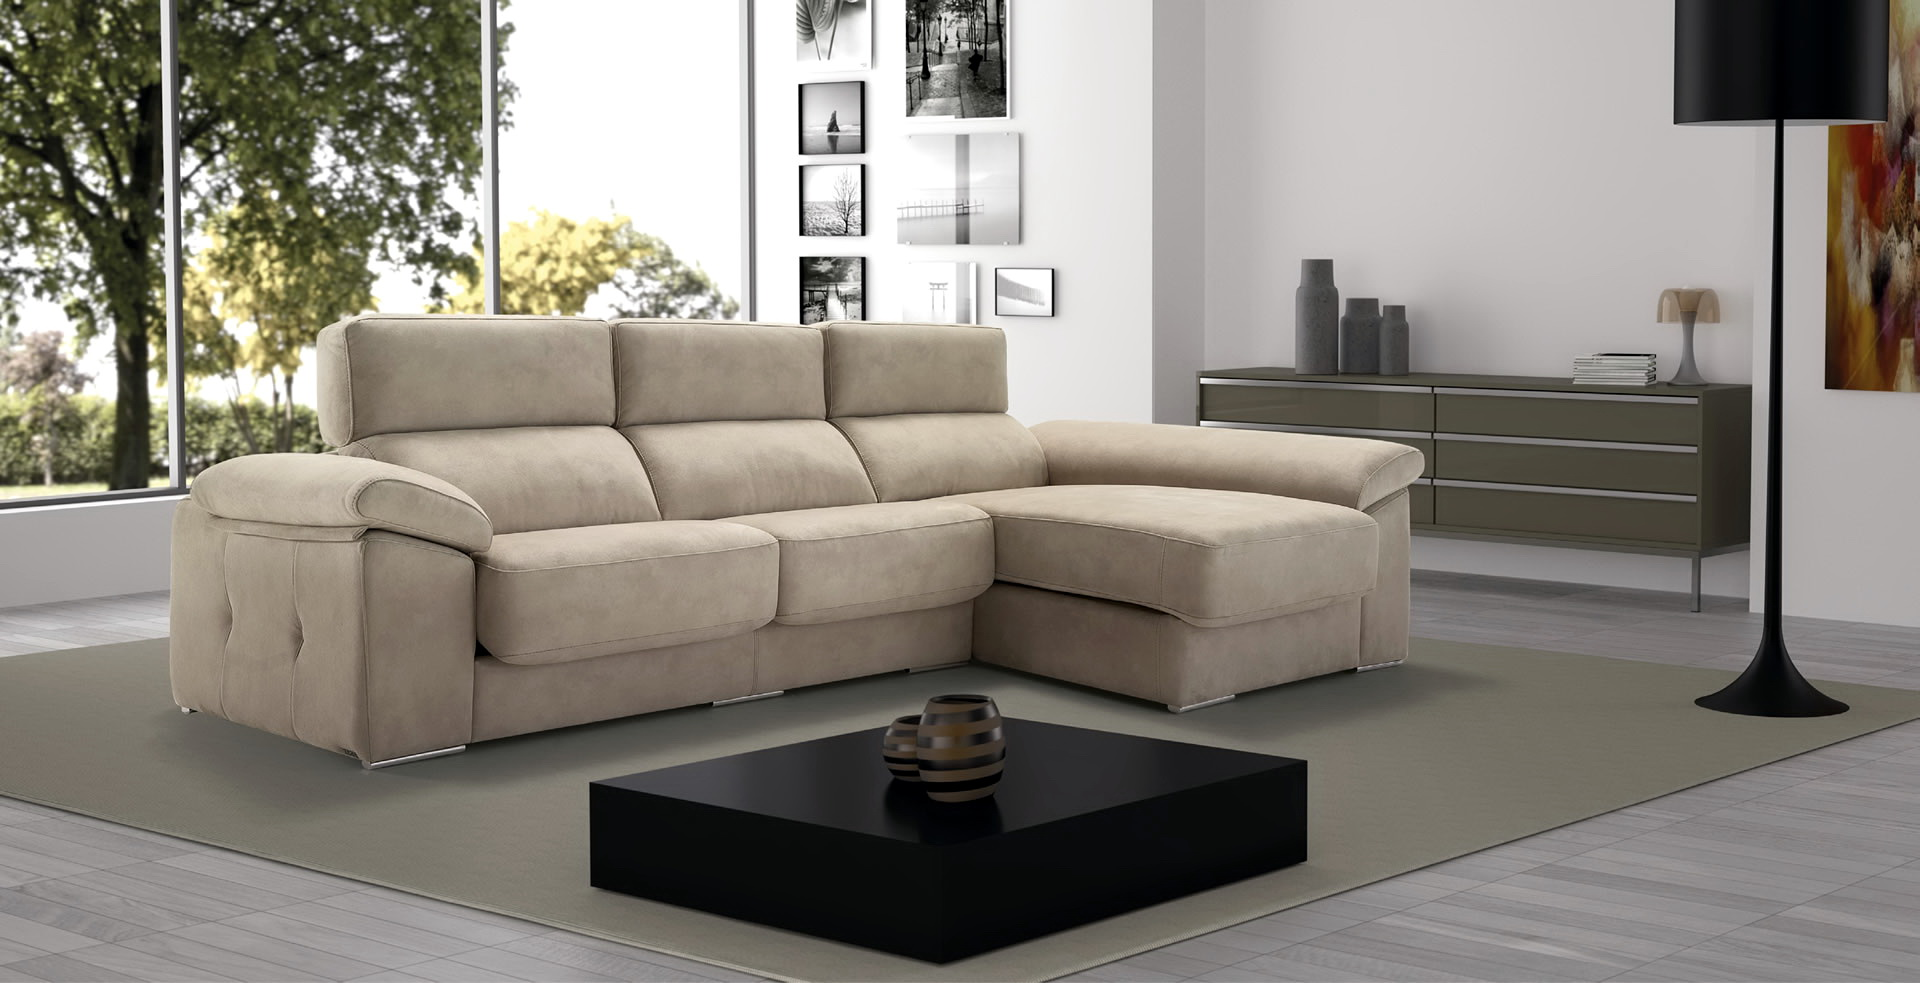 Bautista Muebles Soria Sofá Chaise Longue Modular Asientos Extensibles By